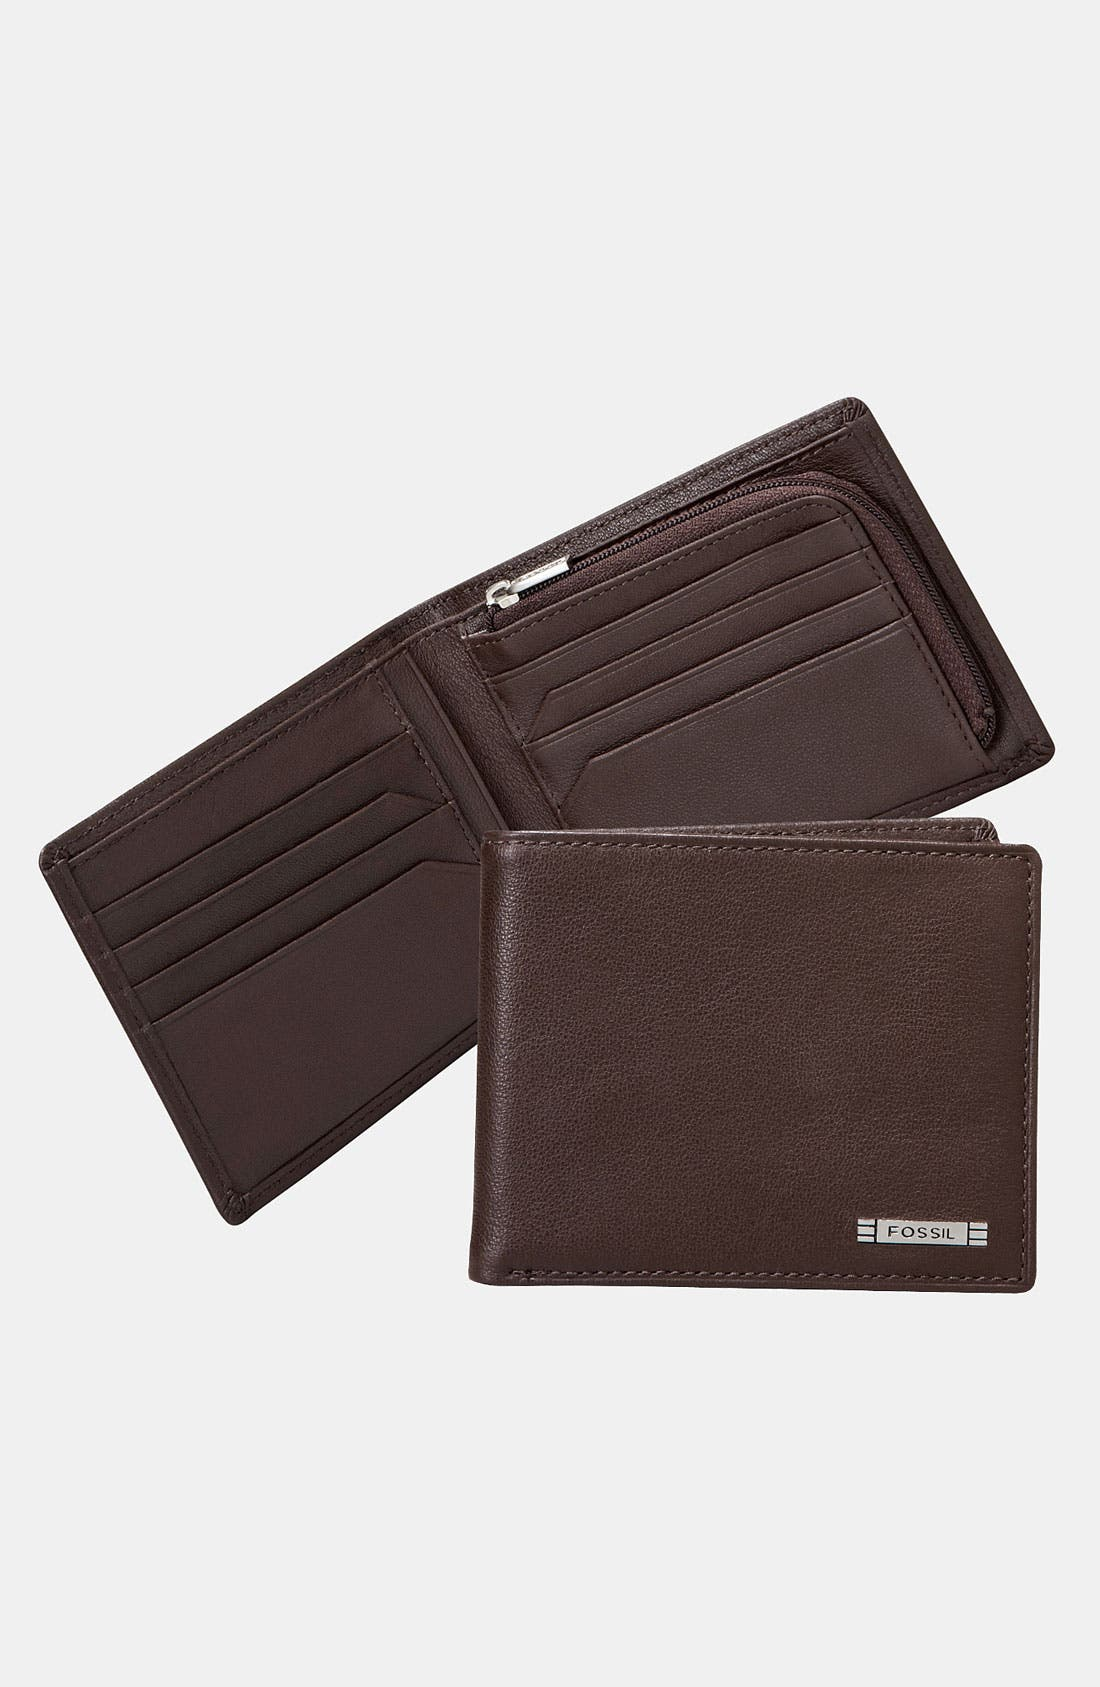 Main Image - Fossil 'Evans' Leather Billfold